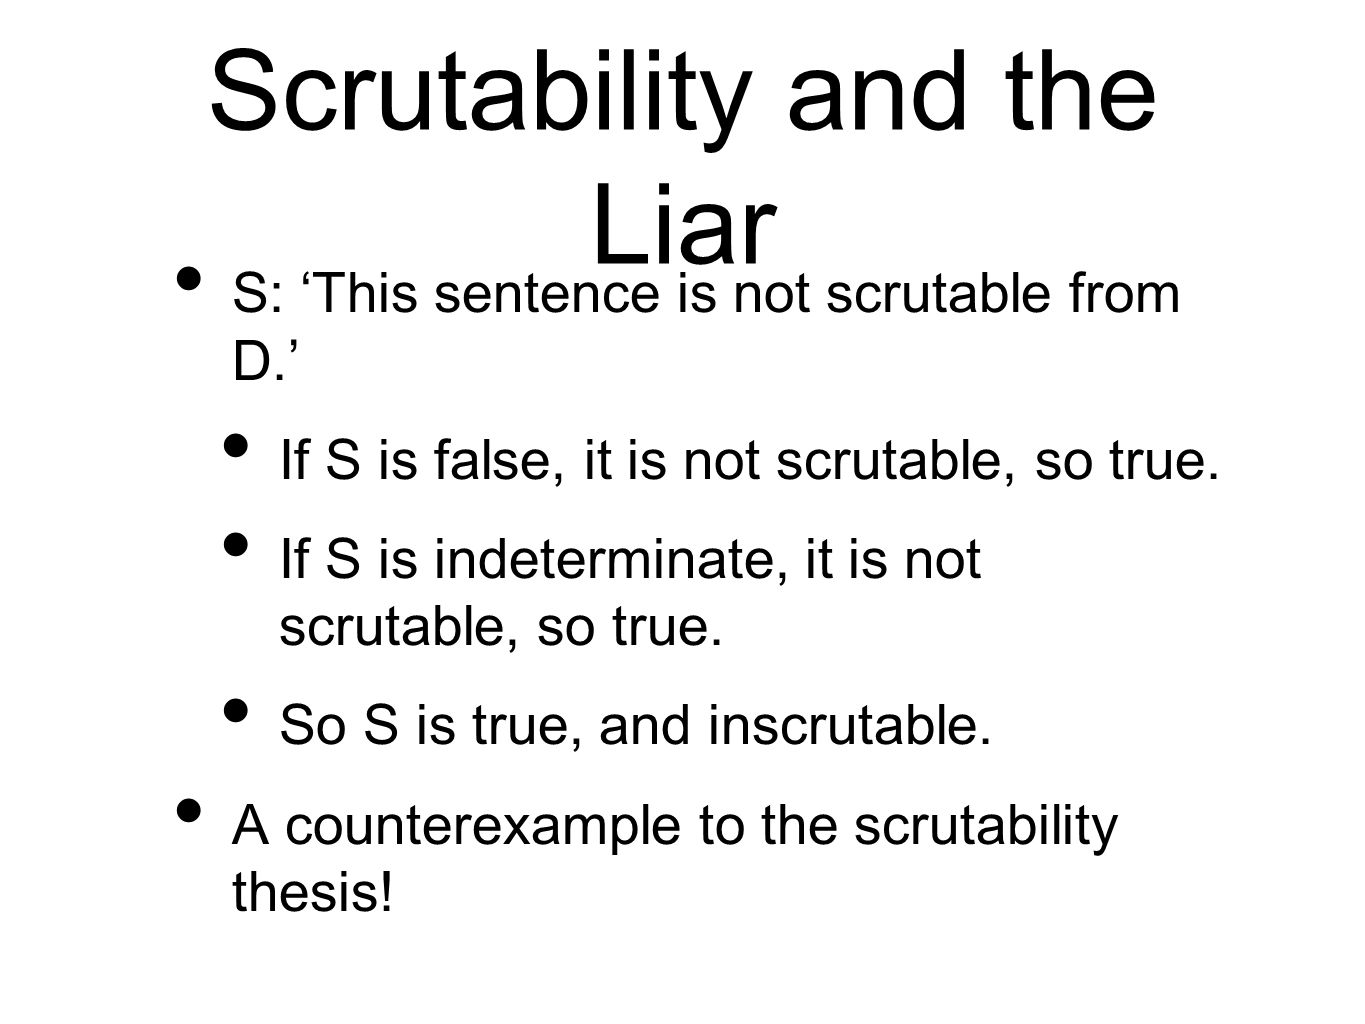 Scrutability and the Liar S: This sentence is not scrutable from D.